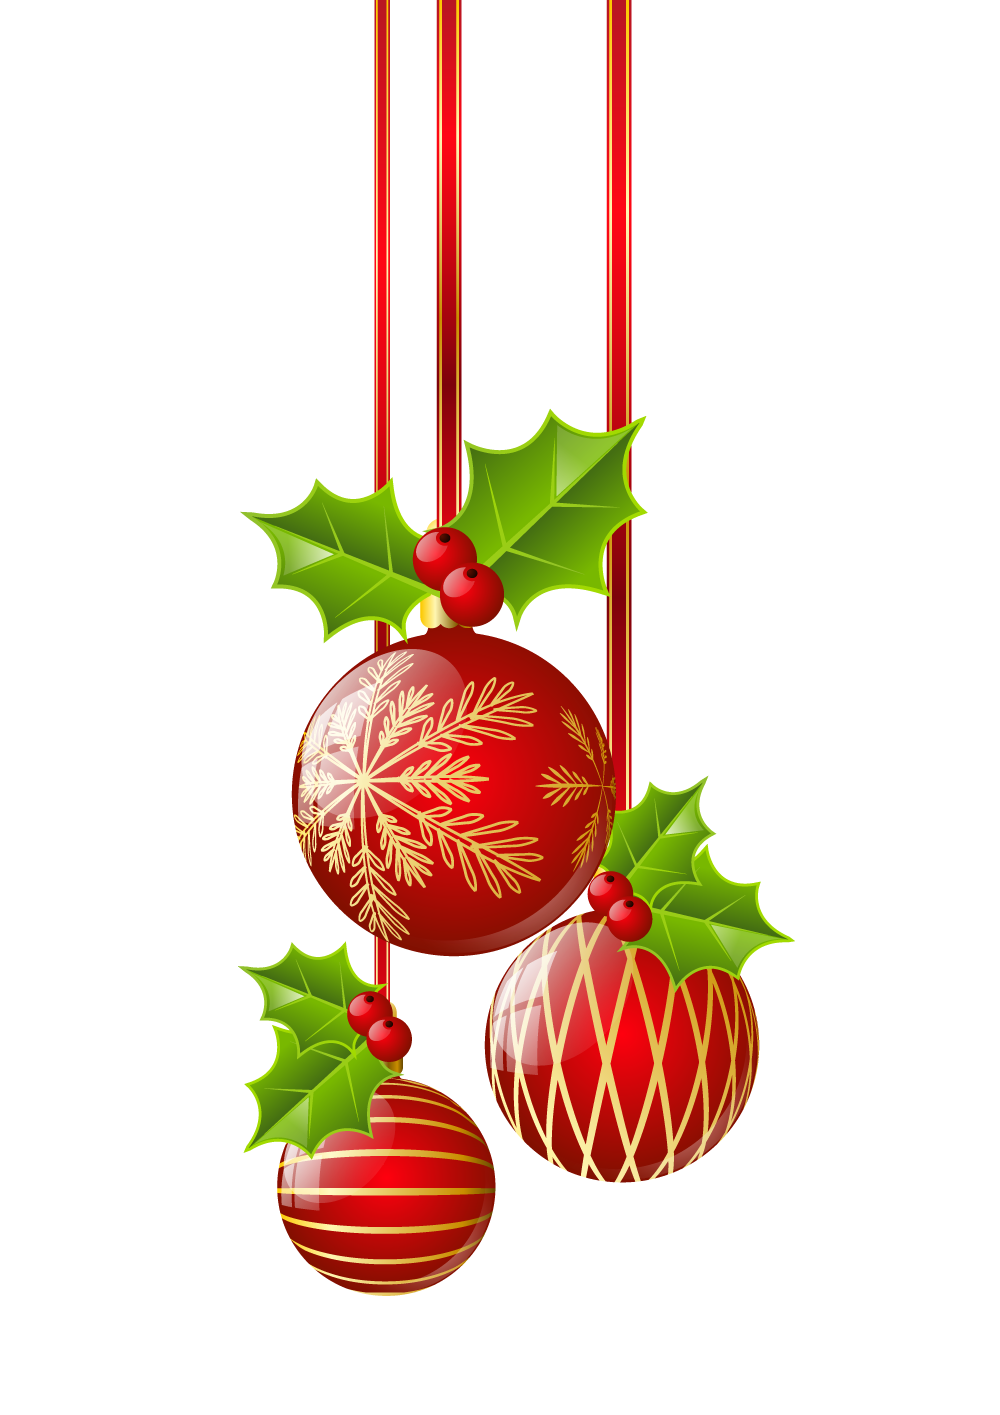 Transparent Christmas Red Ornaments Png Clipart Christmas Ornaments Christmas Crafts Decorations Christmas Art